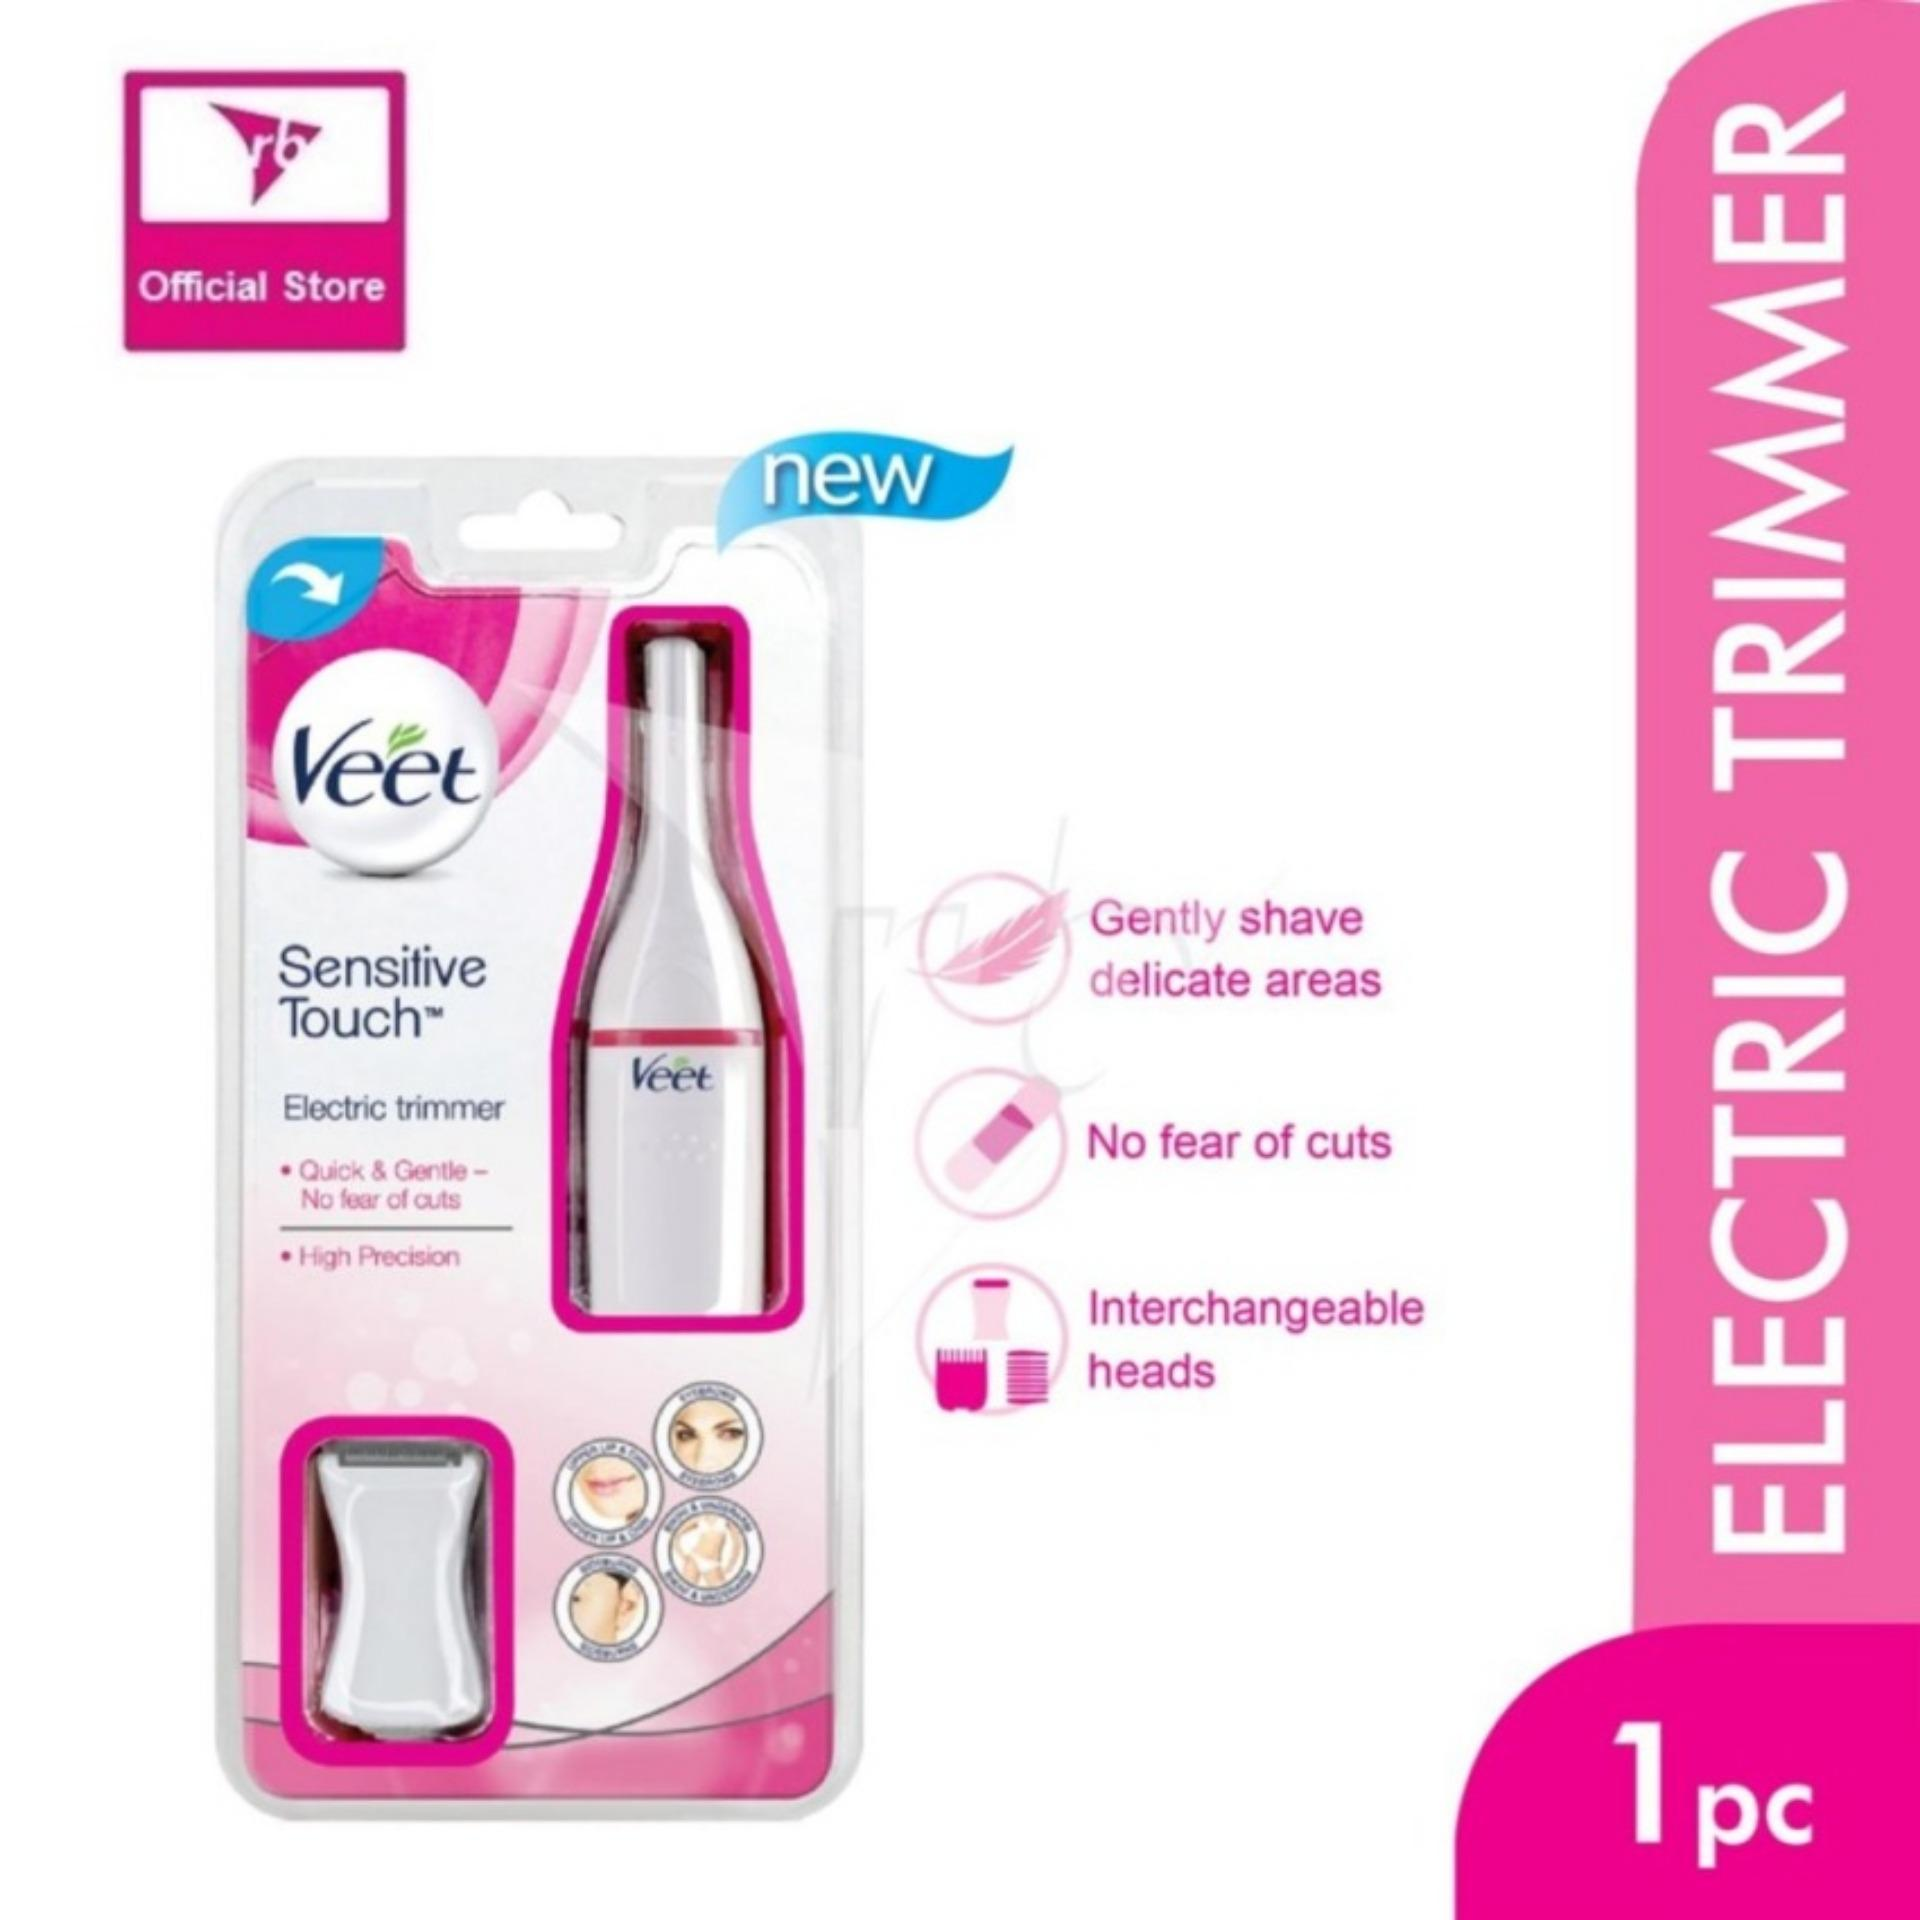 Veet Sensitive Touch Electric Trimmer For Sale Online